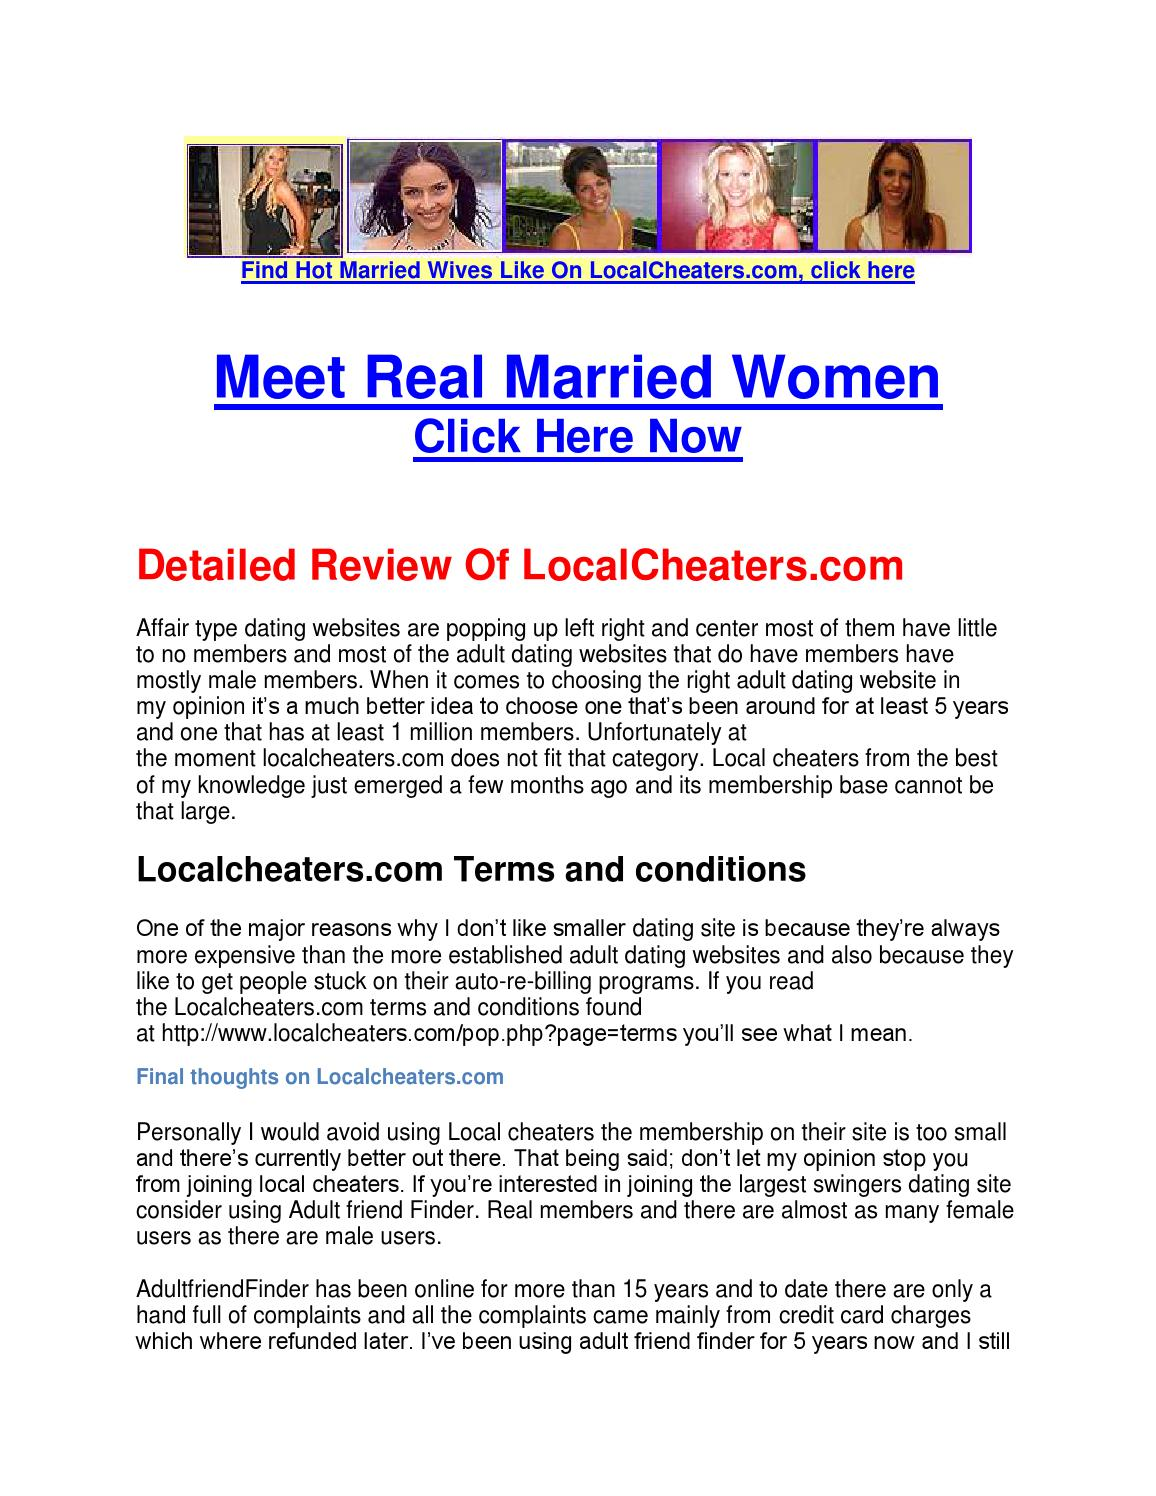 LocalCheaters.com Reviews : Is Local Cheaters A Scam? Watch This Review &  Find Out by LocalCheaters - issuu